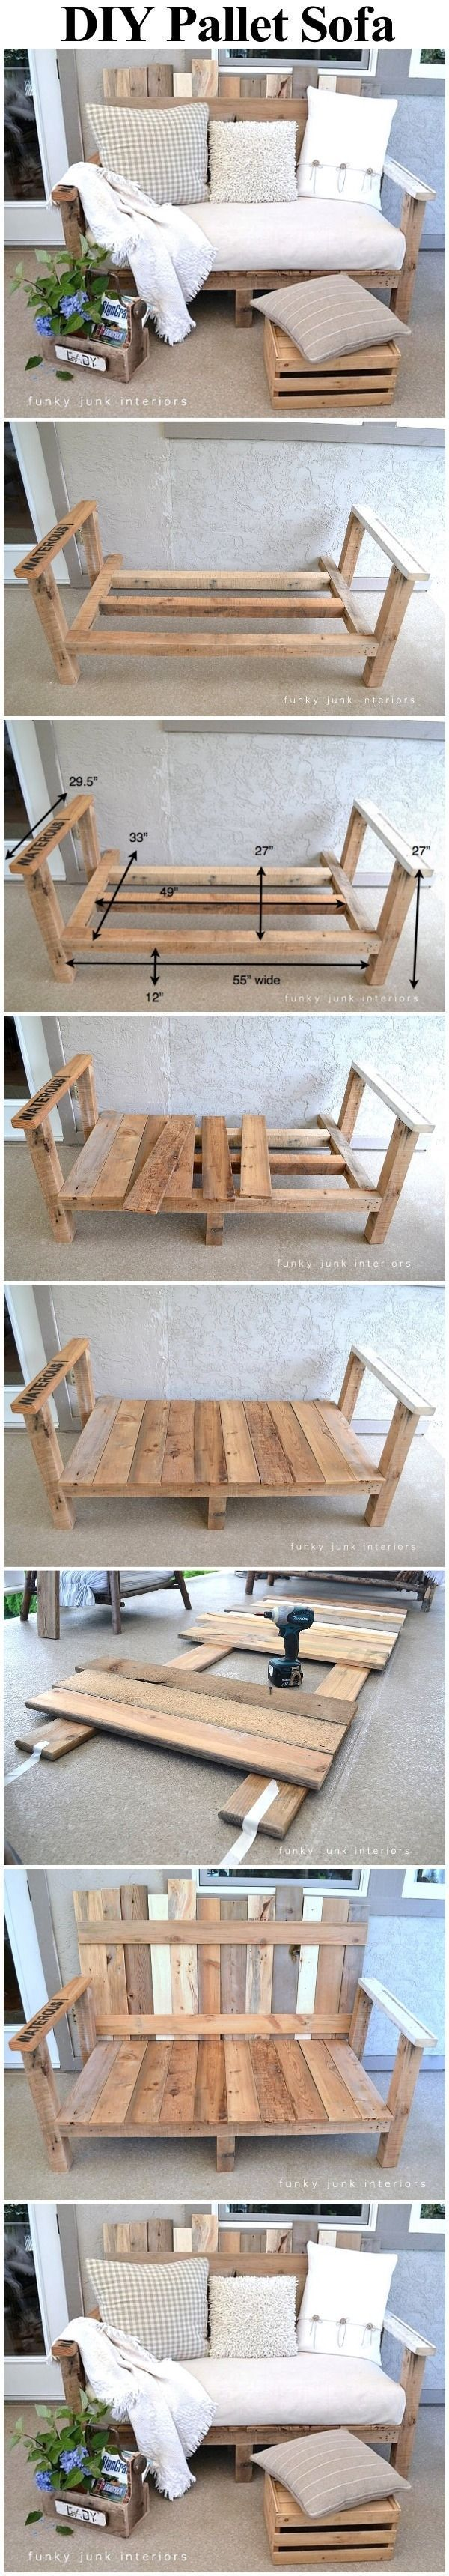 Pallet Wood Outdoor Sofa summer diy craft crafts diy ideas diy crafts backyard ideas summer backyard ideas backyard projects pallet wood idea